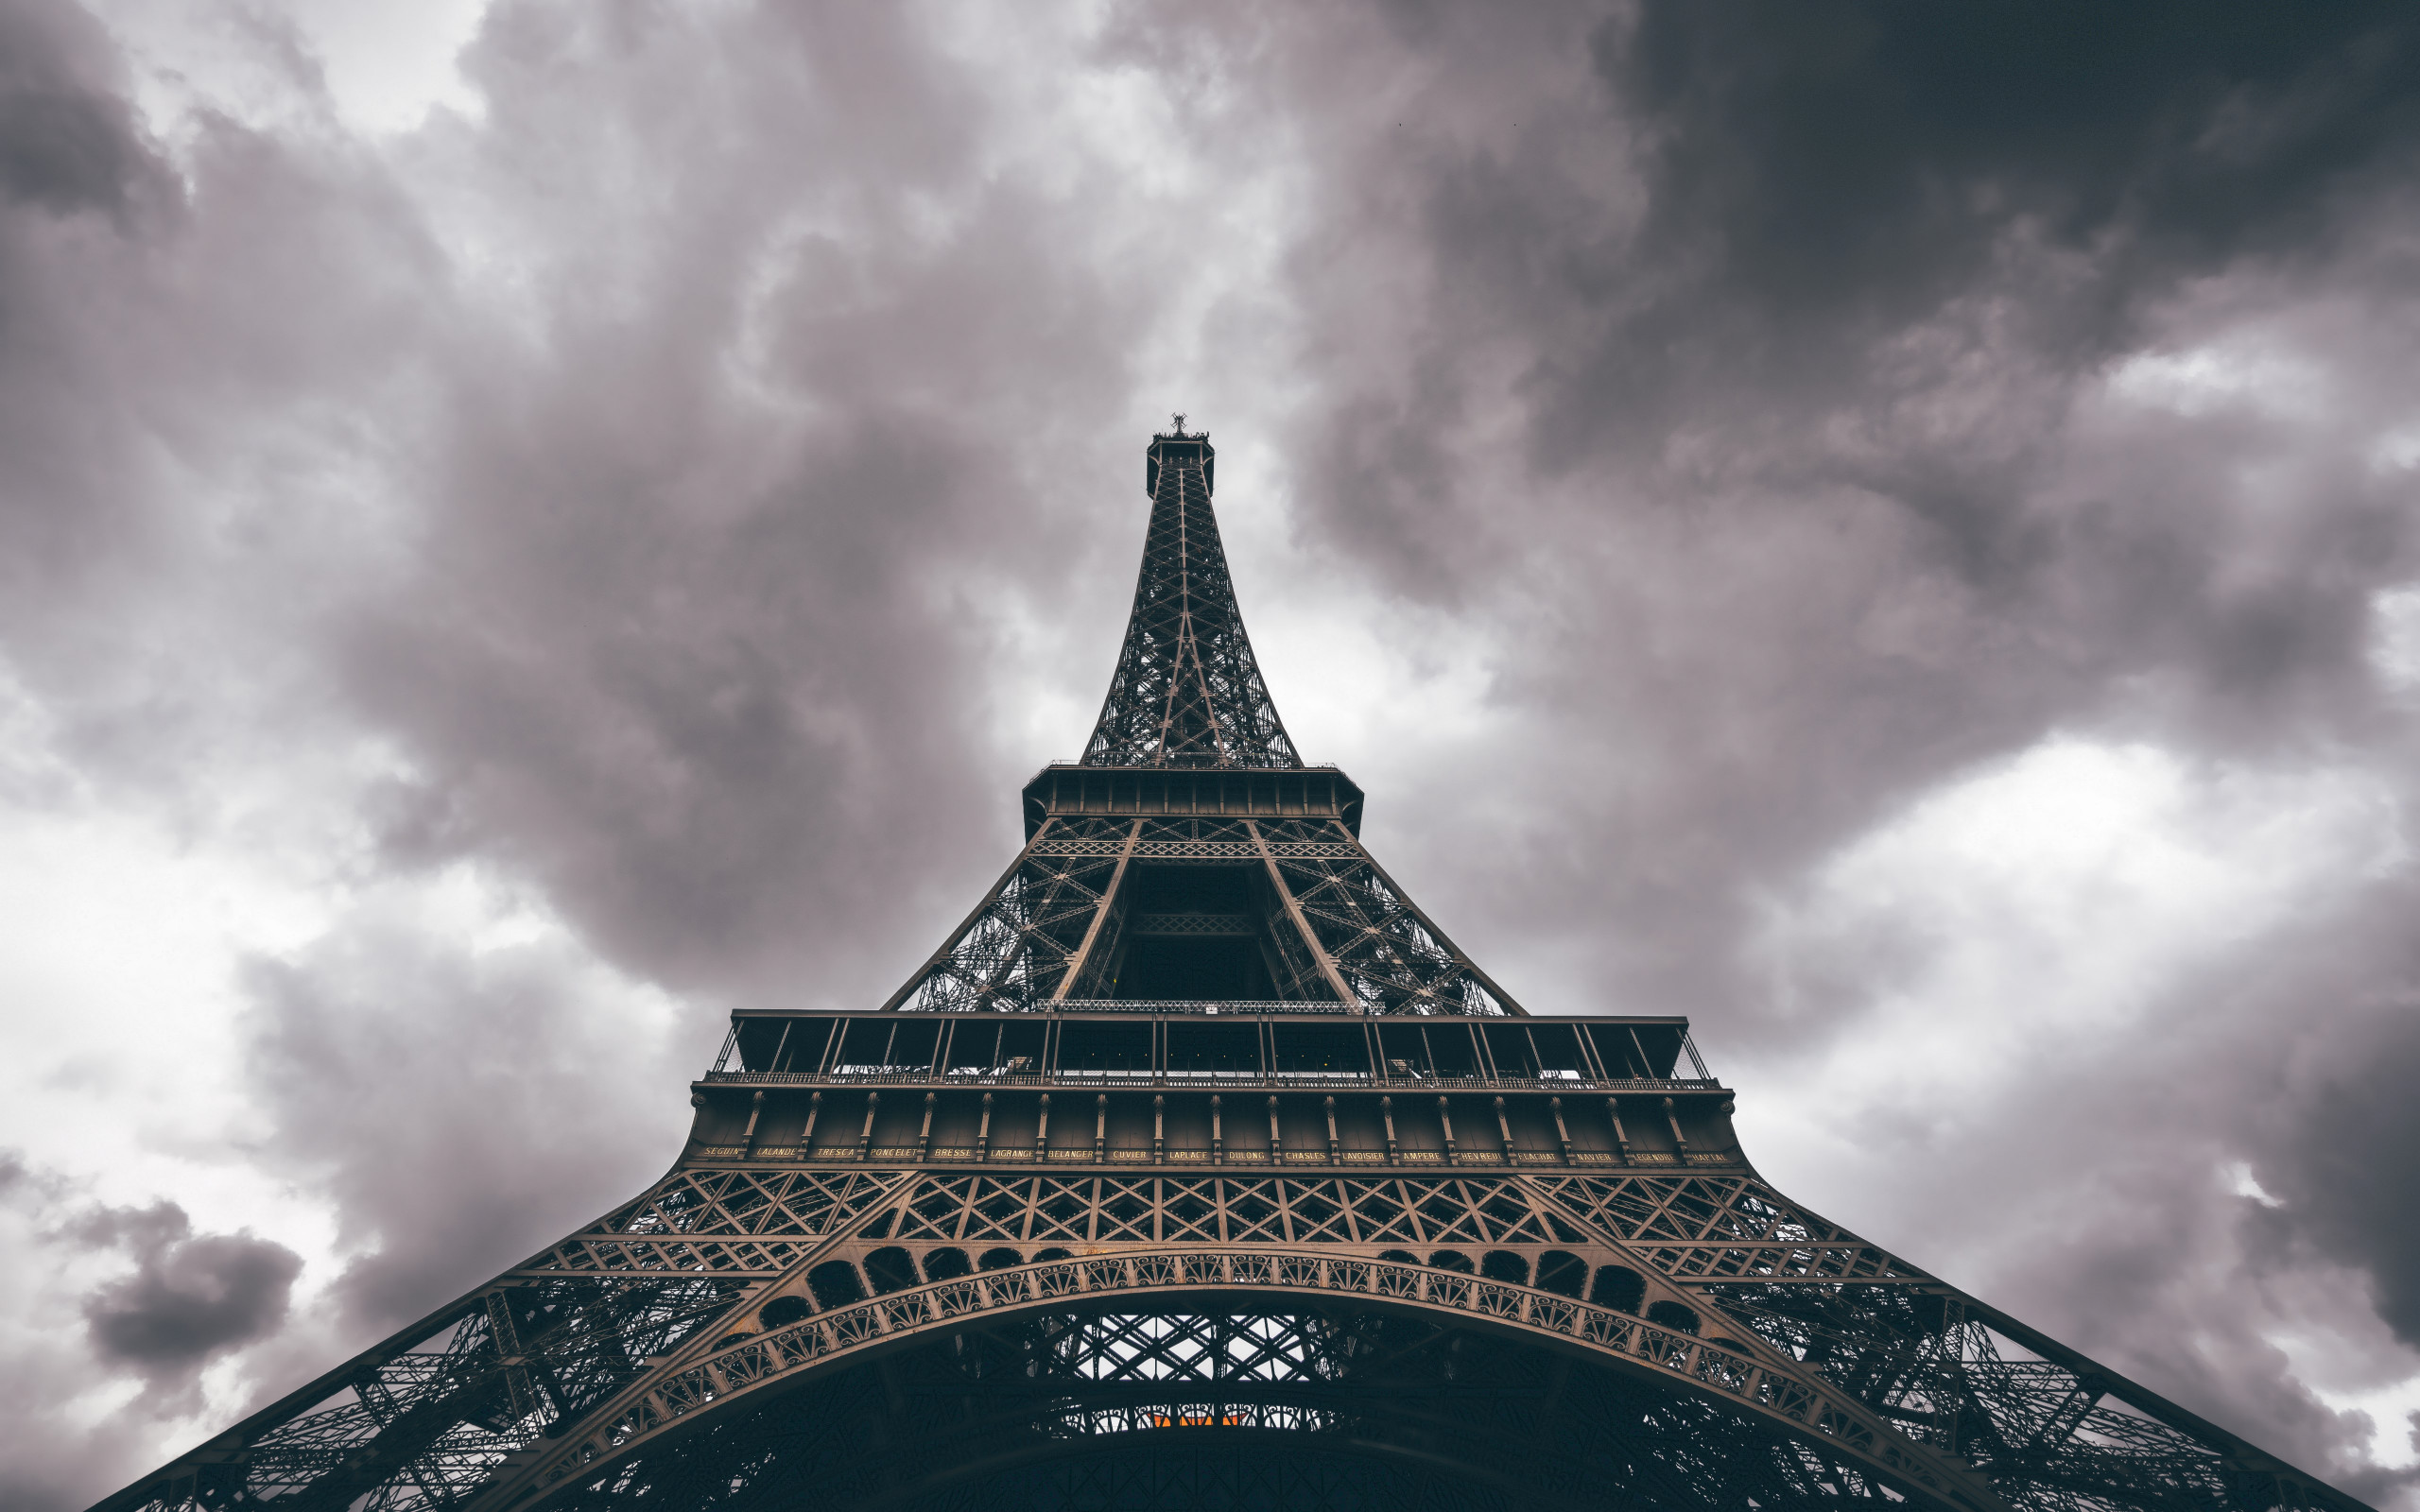 Eiffel Tower in a cloudy day wallpaper 2560x1600